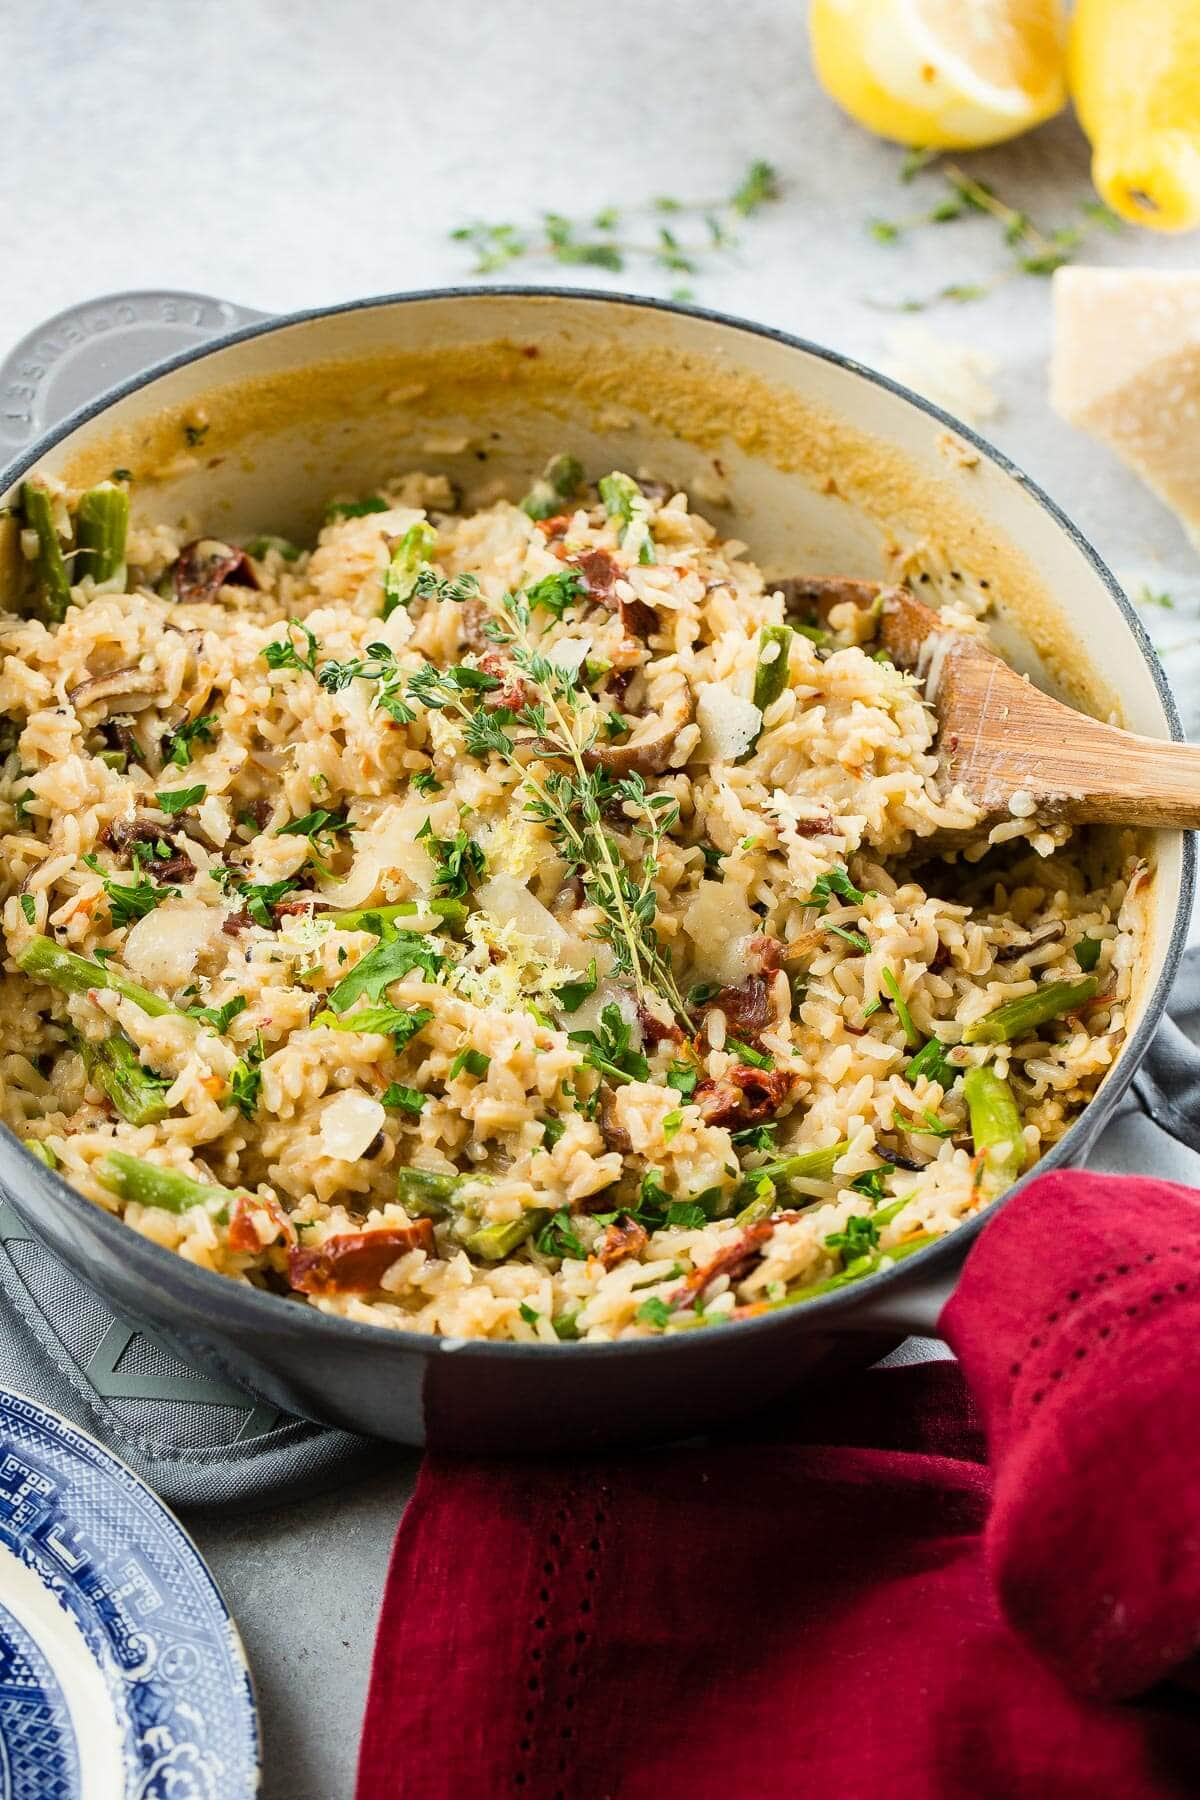 The holidays are busy enough without adding in all of the cooking and family dinners. Make ahead one pot creamy winter asiago cheese rice with asparagus!